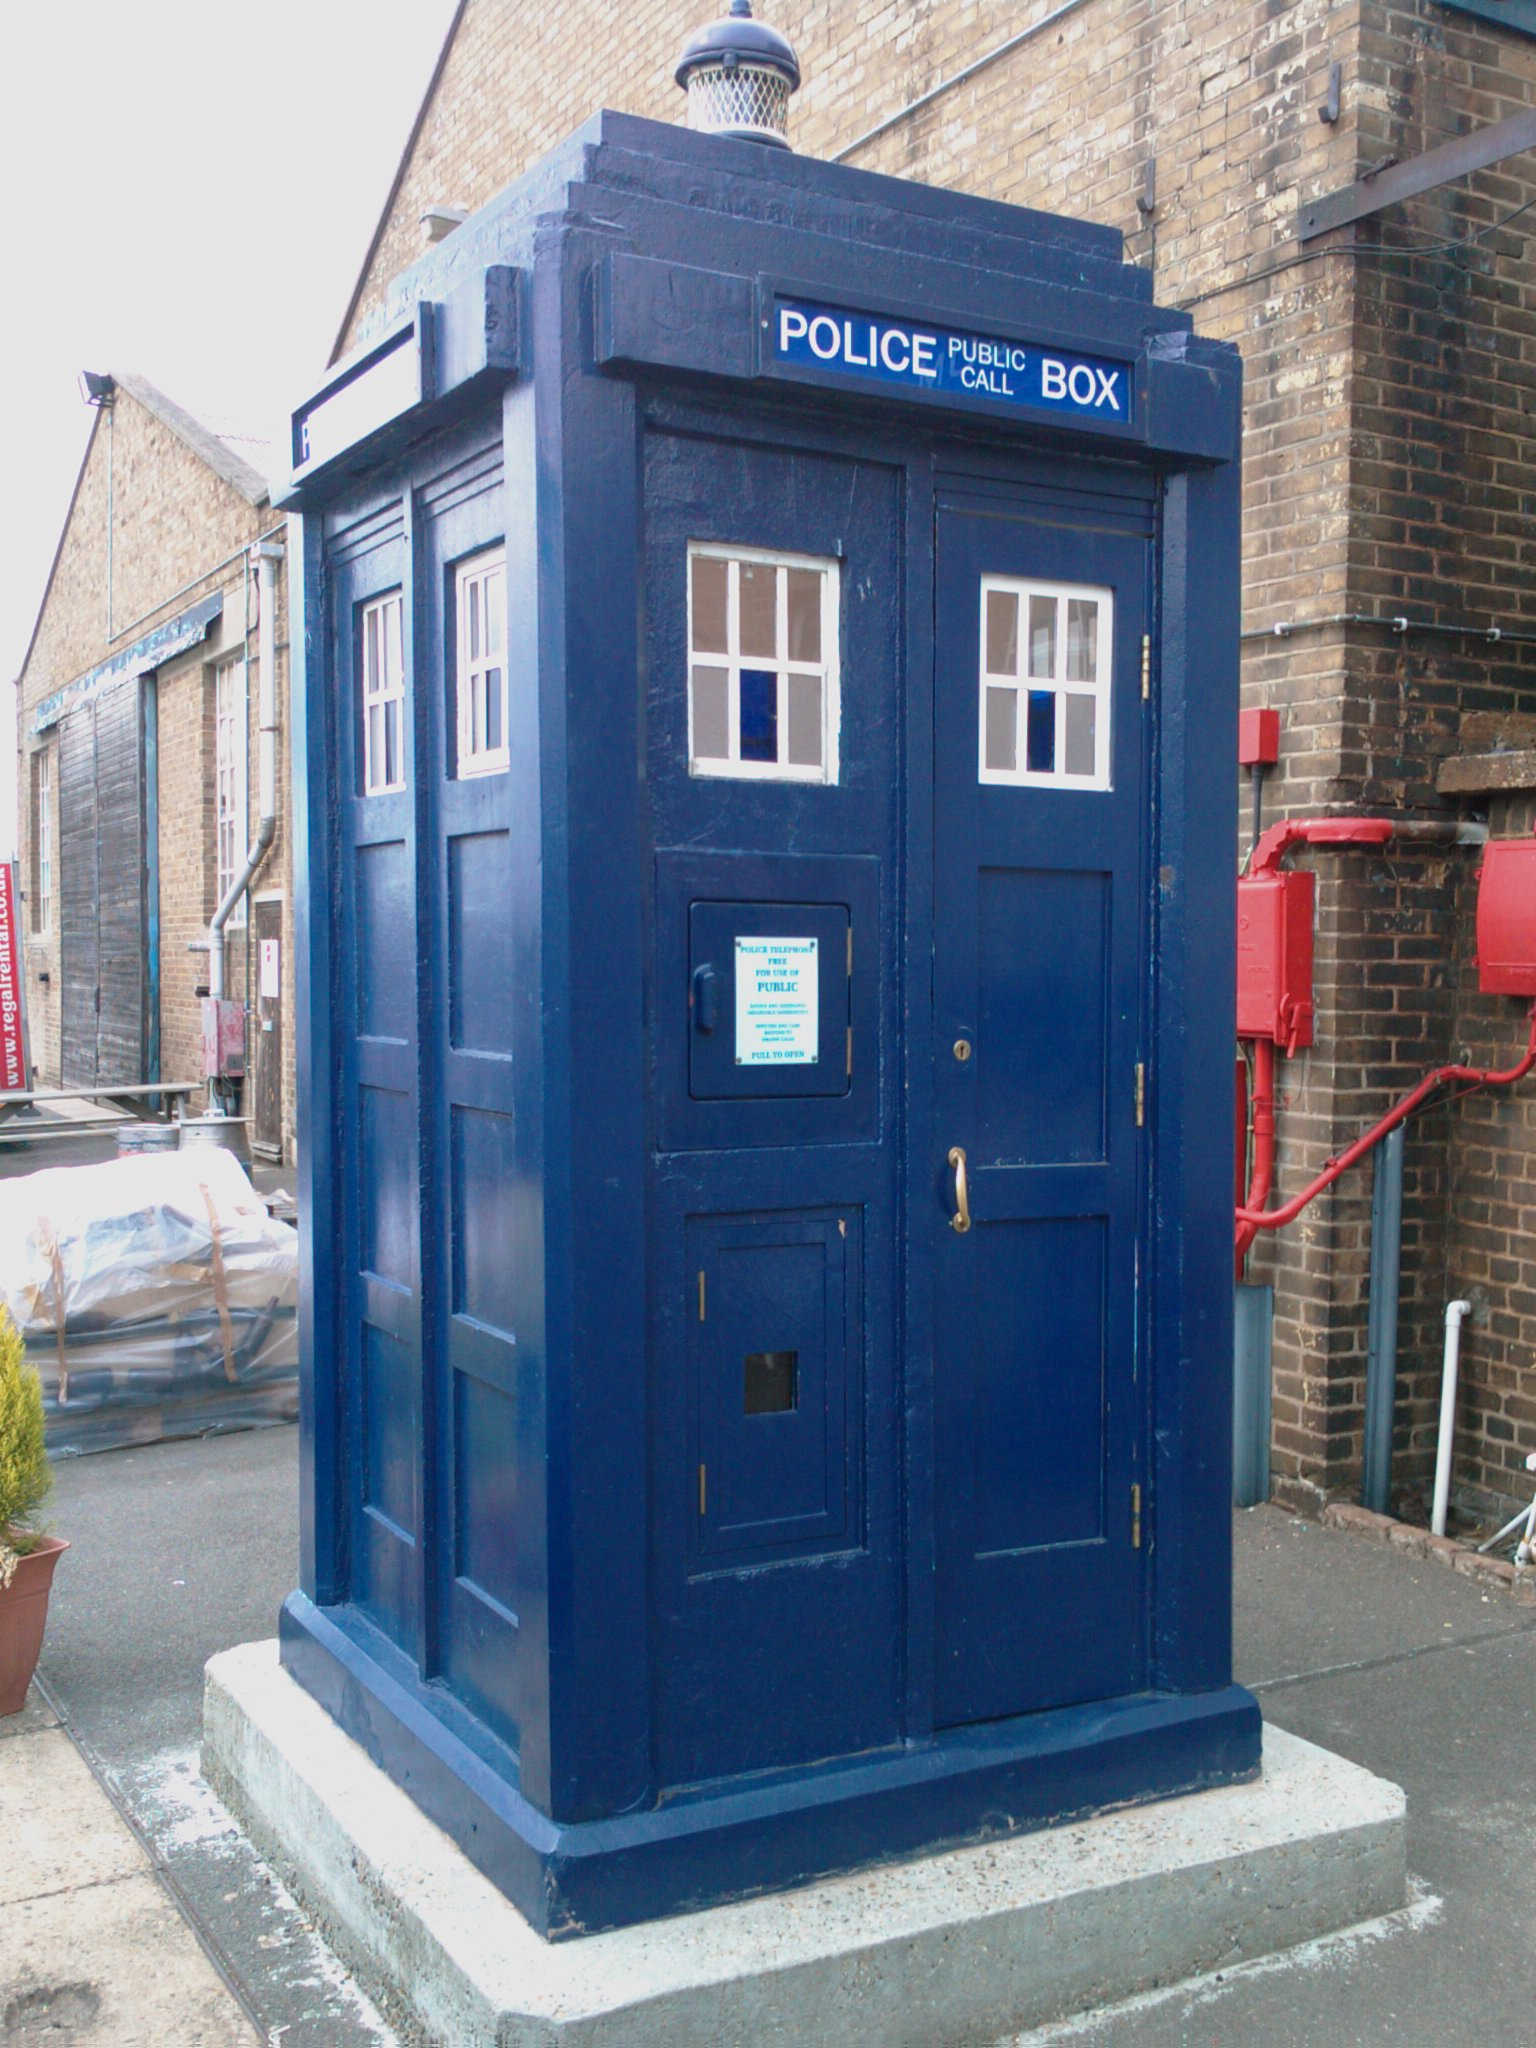 Dr Who's Home Again